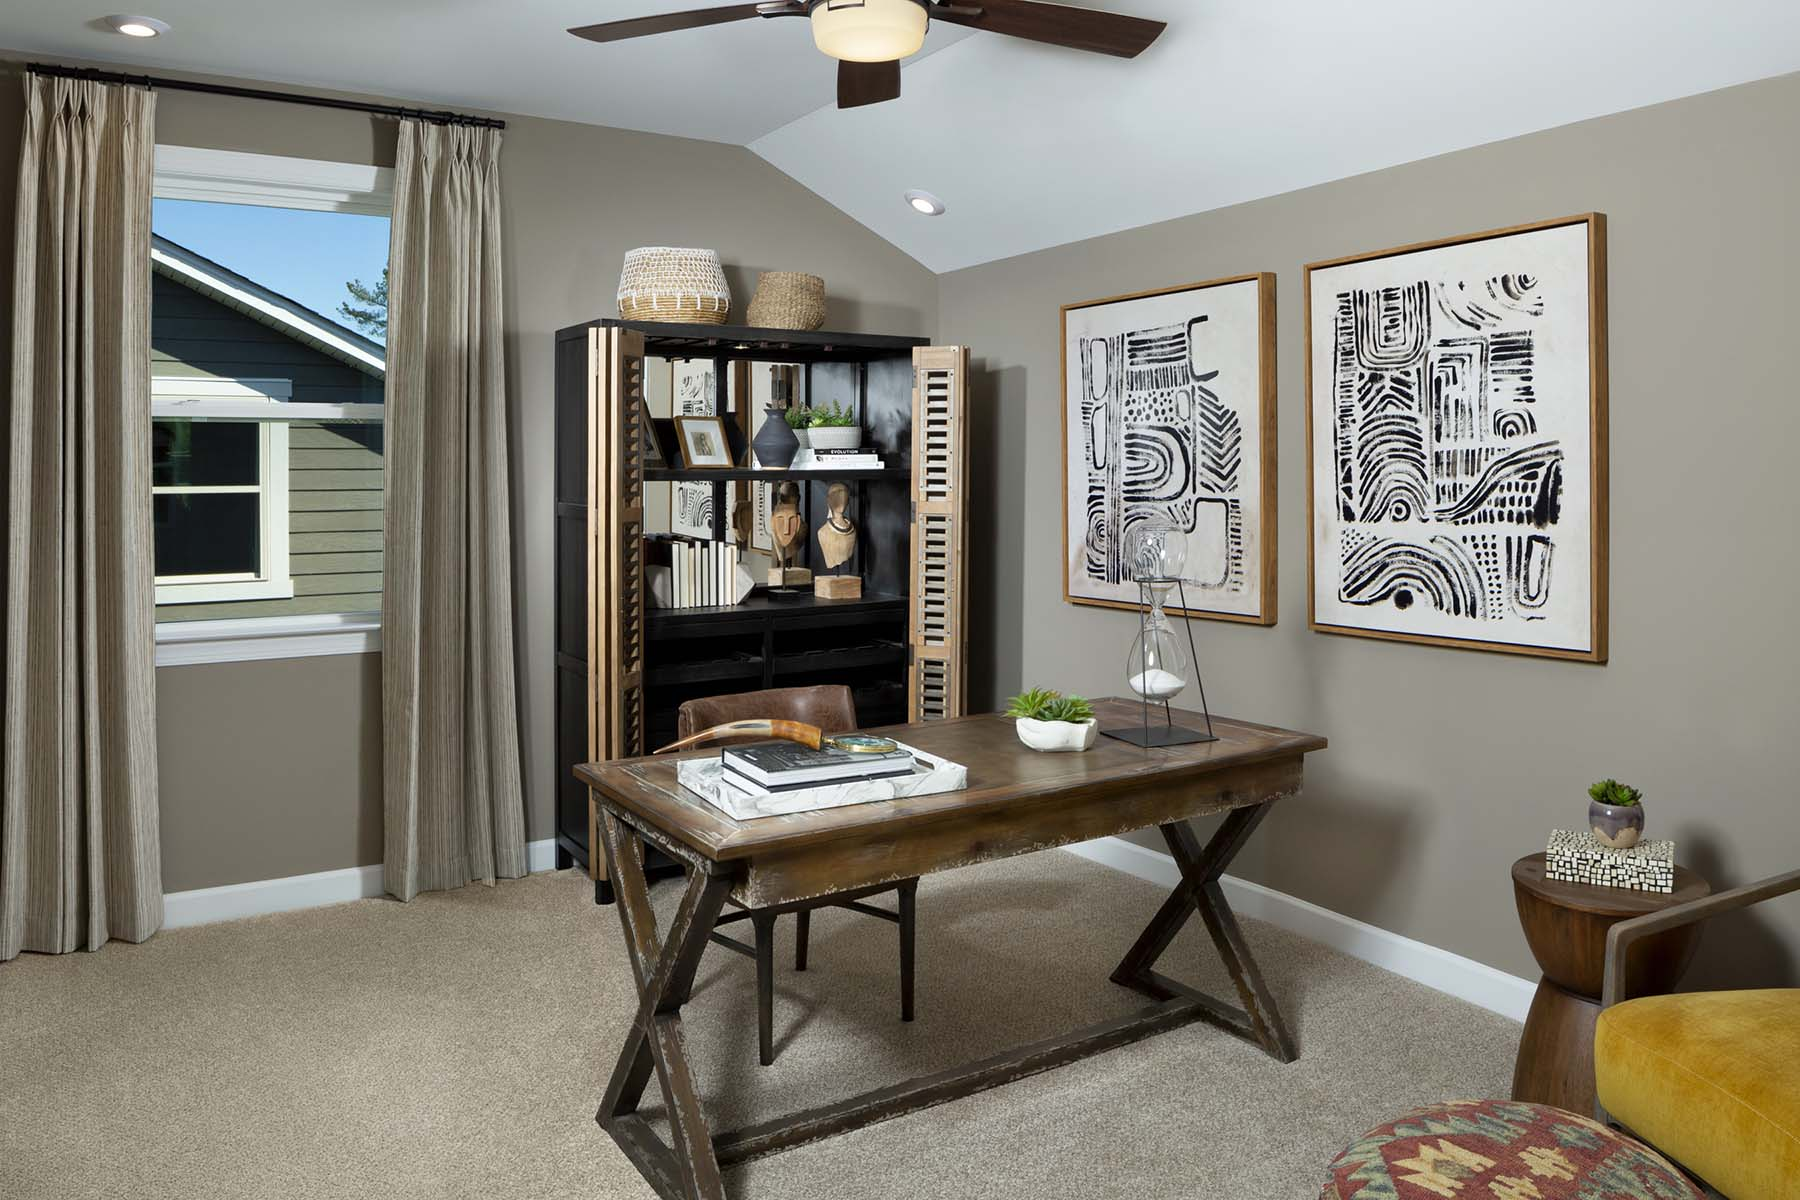 Armstrong Plan Bedroom at Sonata at Mint Hill in Mint Hill North Carolina by Mattamy Homes